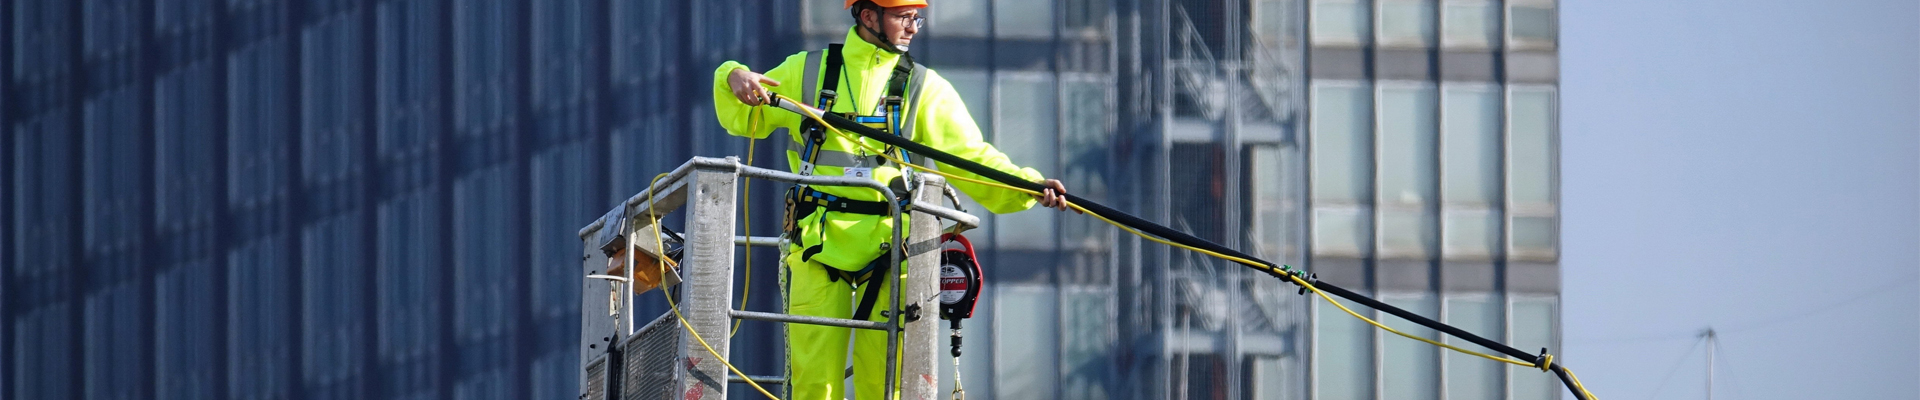 Steam Cleaning and High Pressure Washing Services